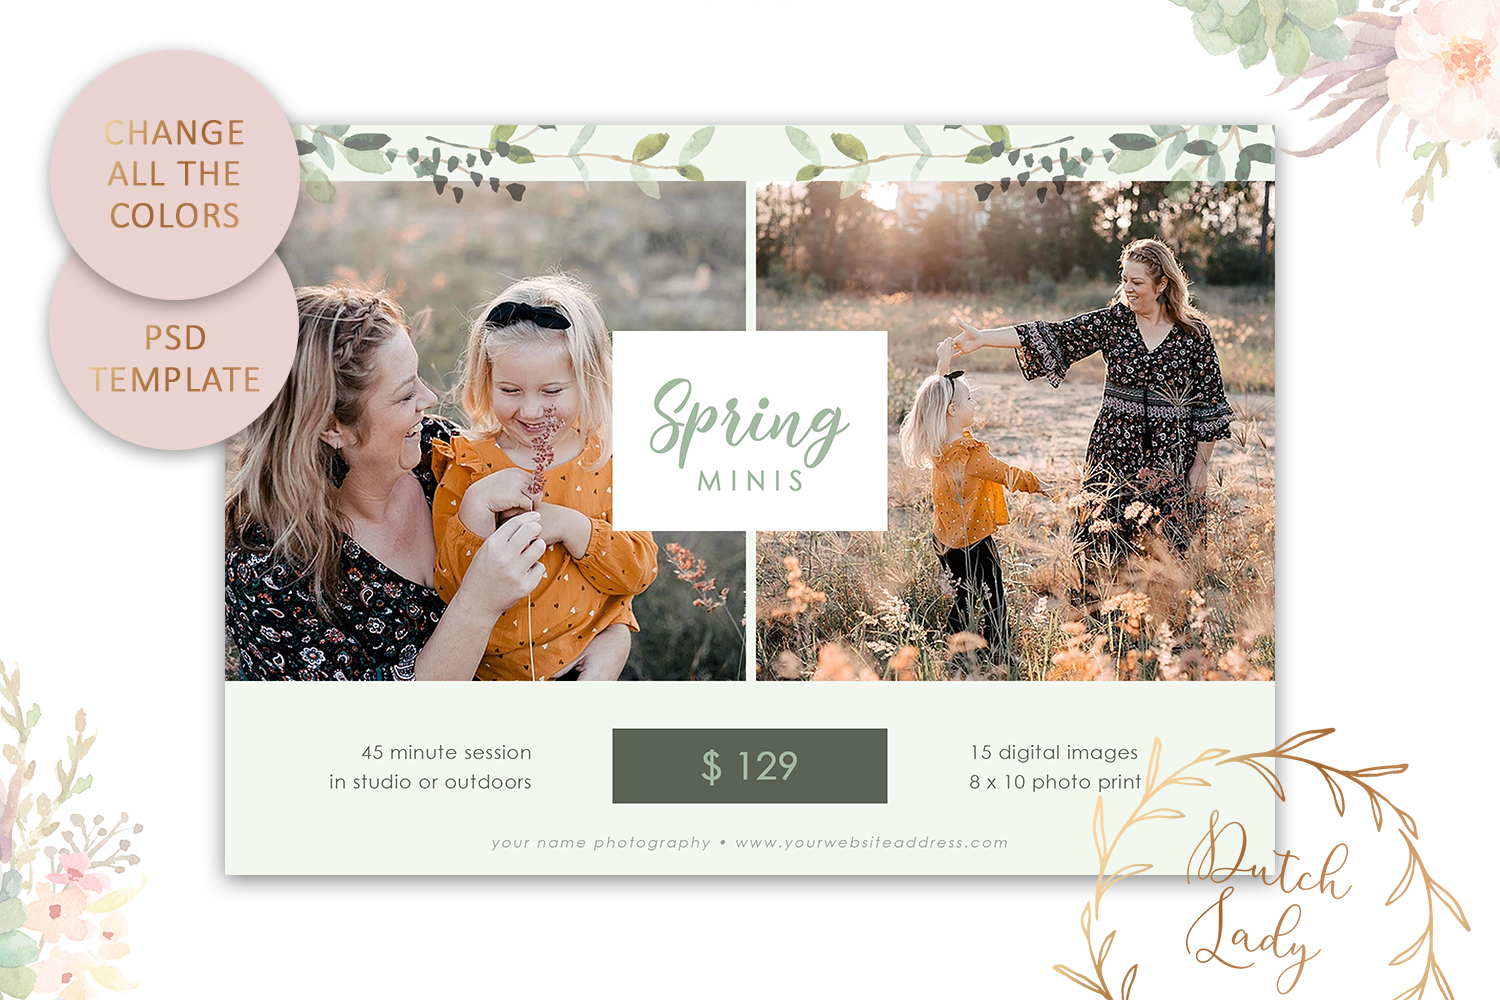 PSD Easter Photo Session Card Template - Design #50 example image 3